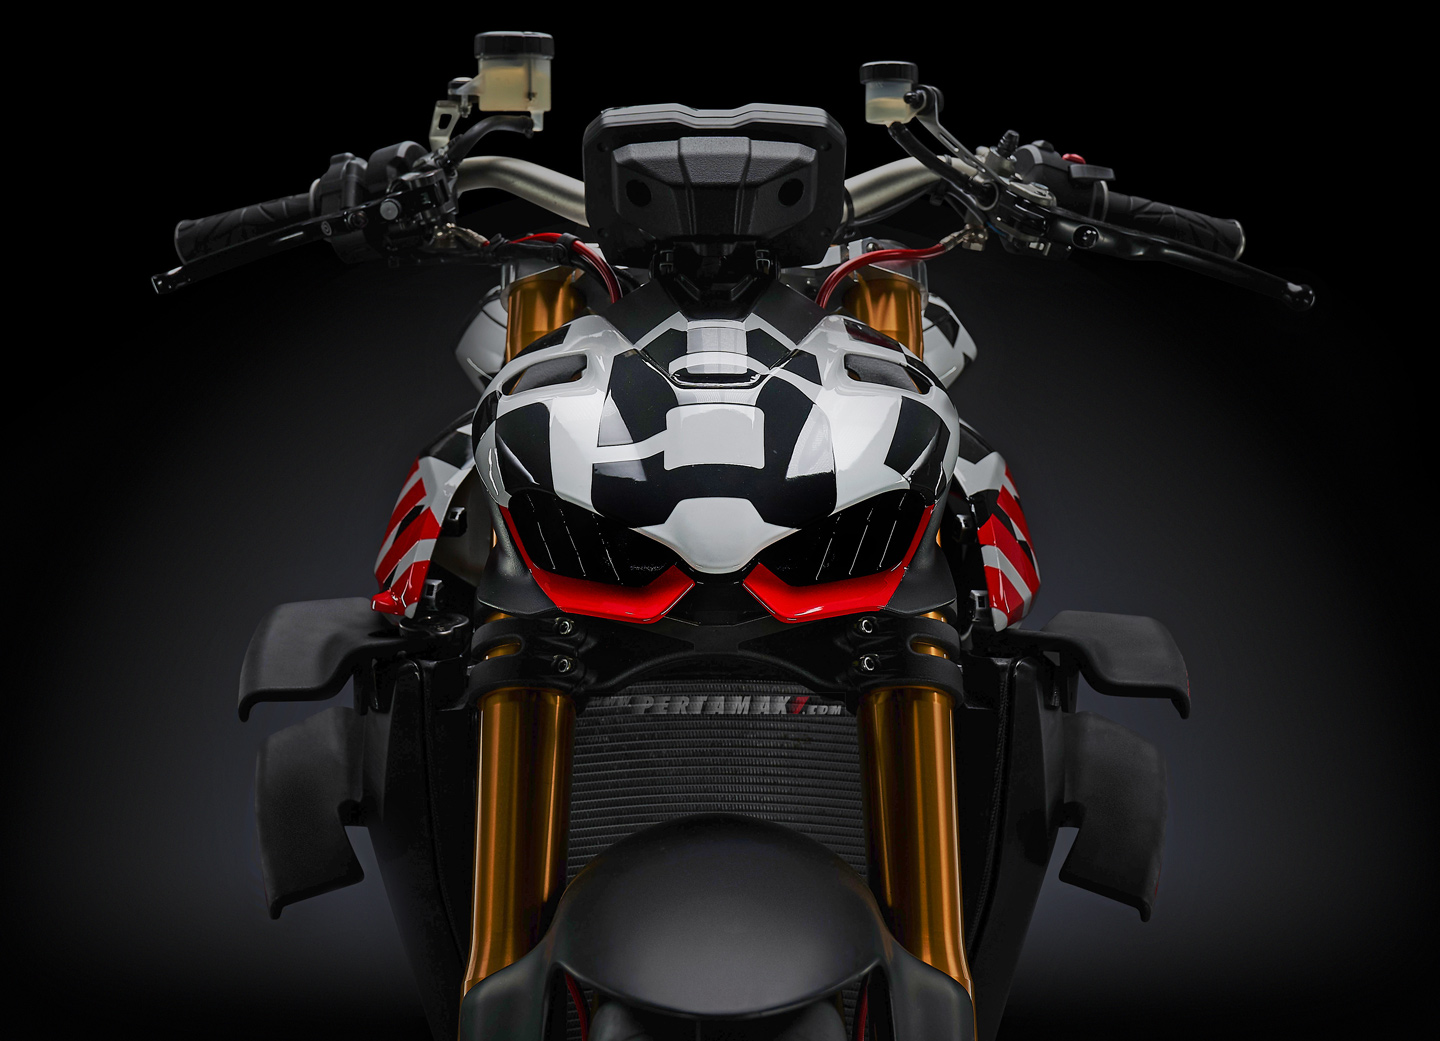 Gambaran Headlight Ducati Streetfighter V4 Headlamp